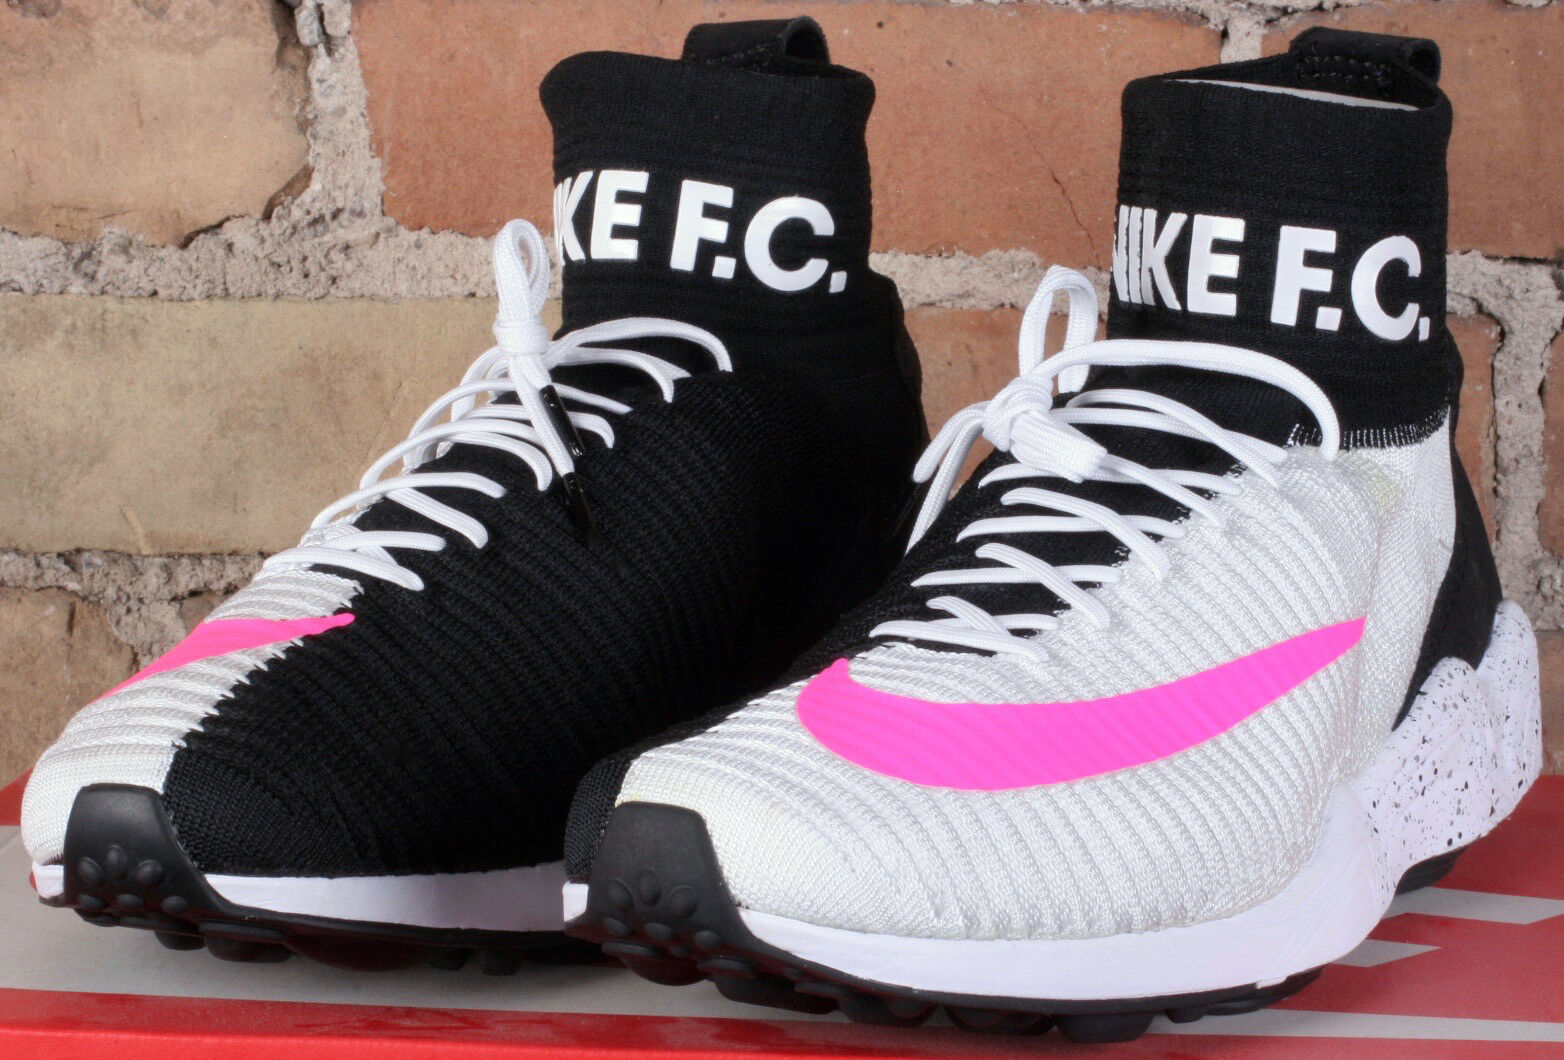 New Nike Air Zoom Mercurial XI FK FC White Black Pink shoes 852616 100 - Size 12